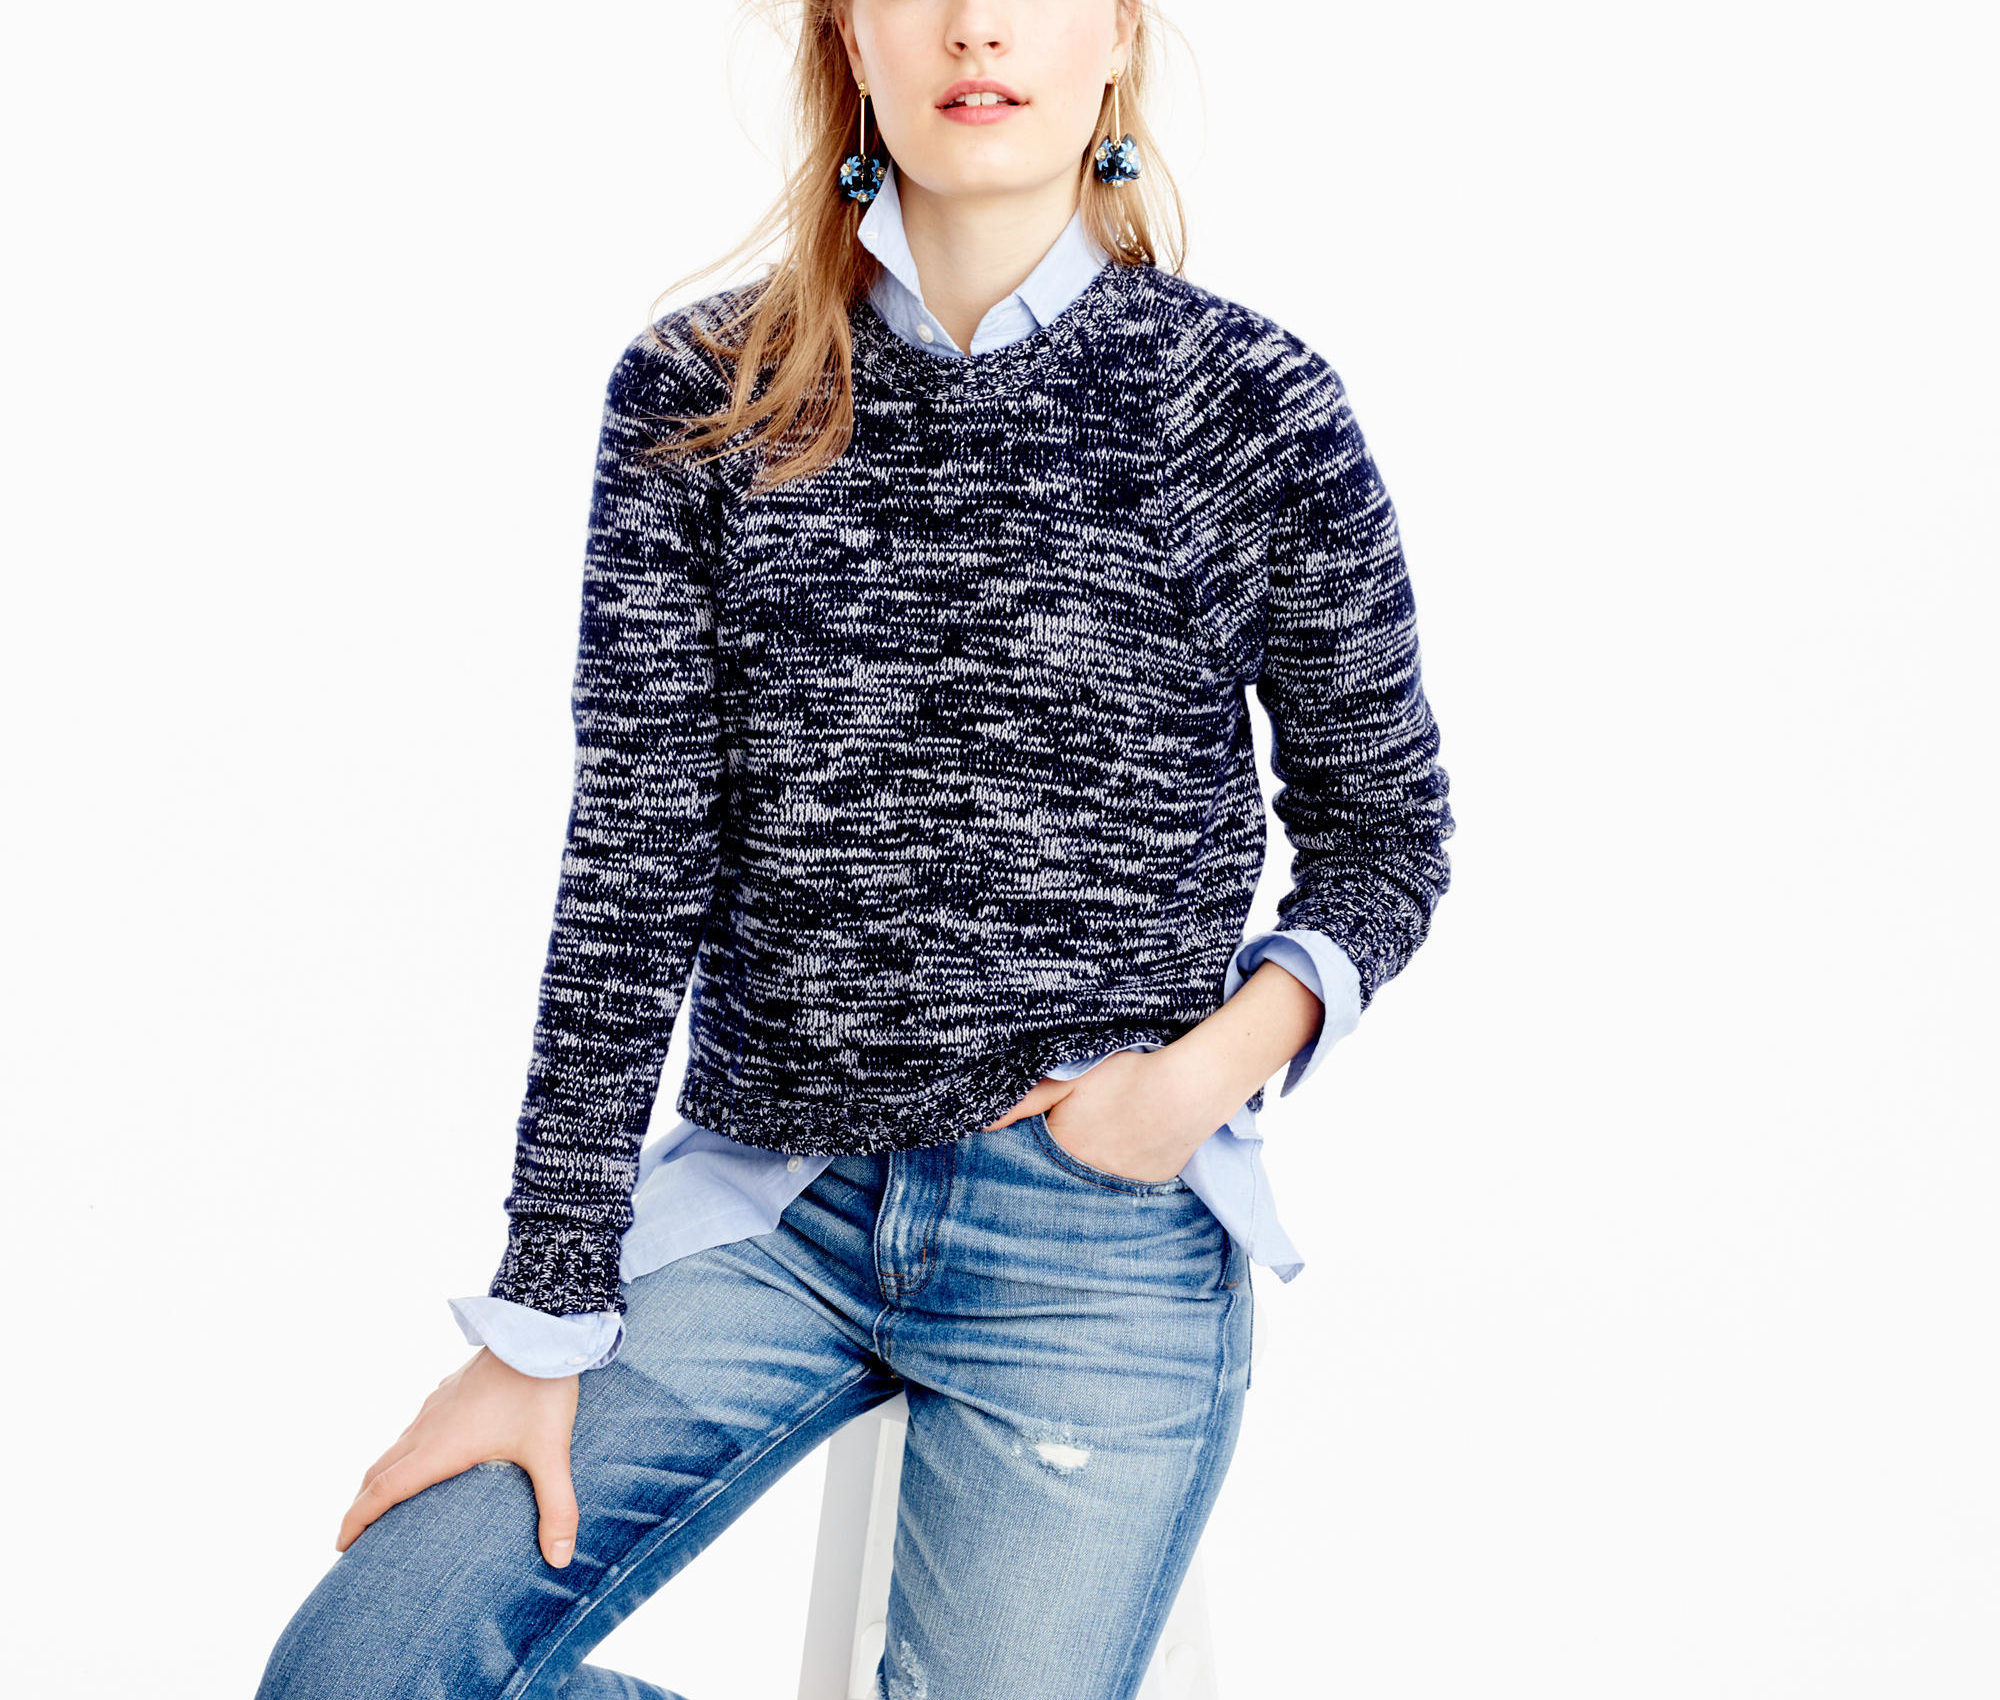 J Crew sweater—all I want to wear are crewnecks